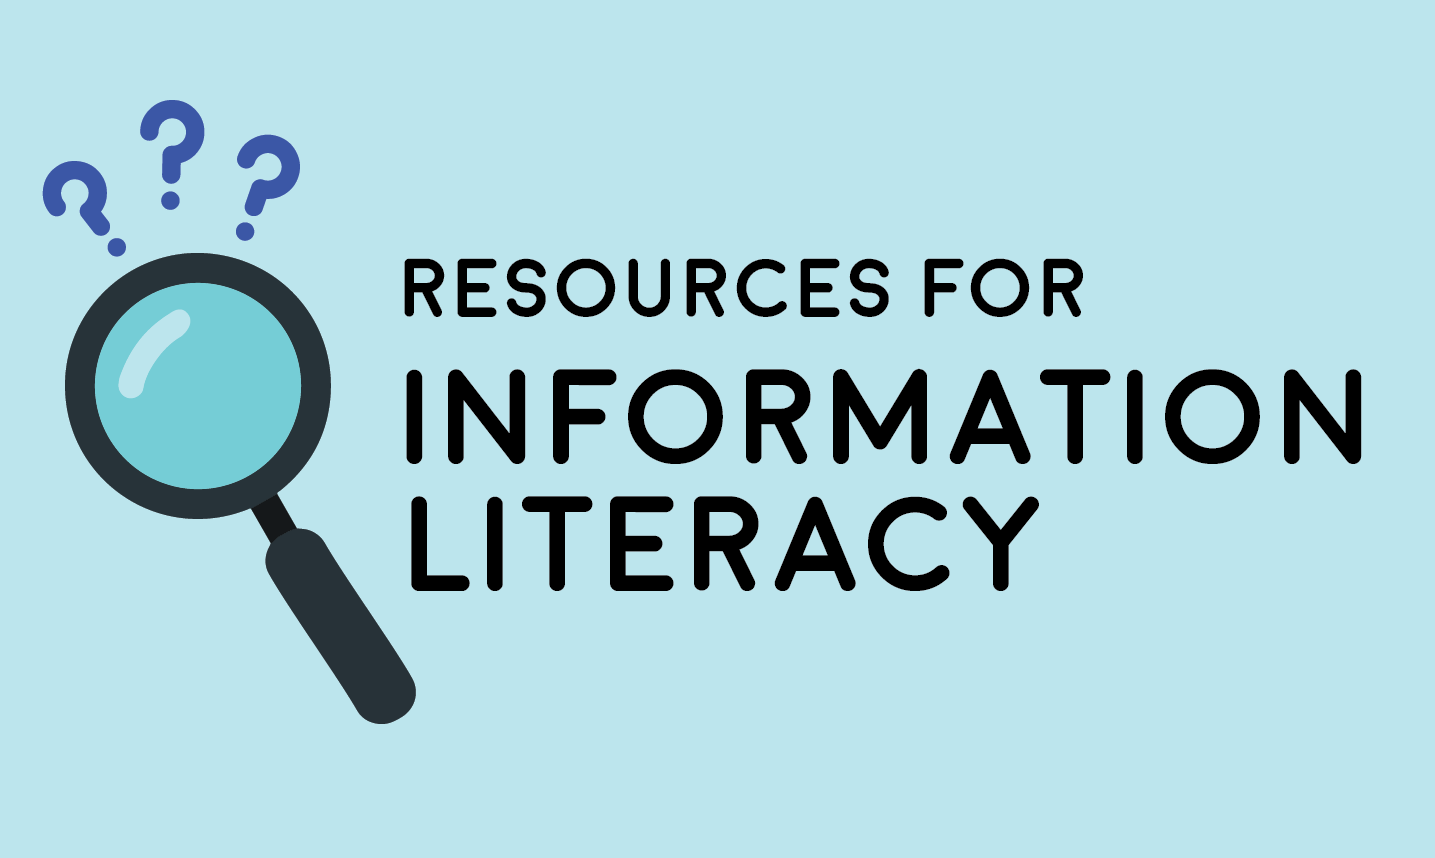 Literacy resources image